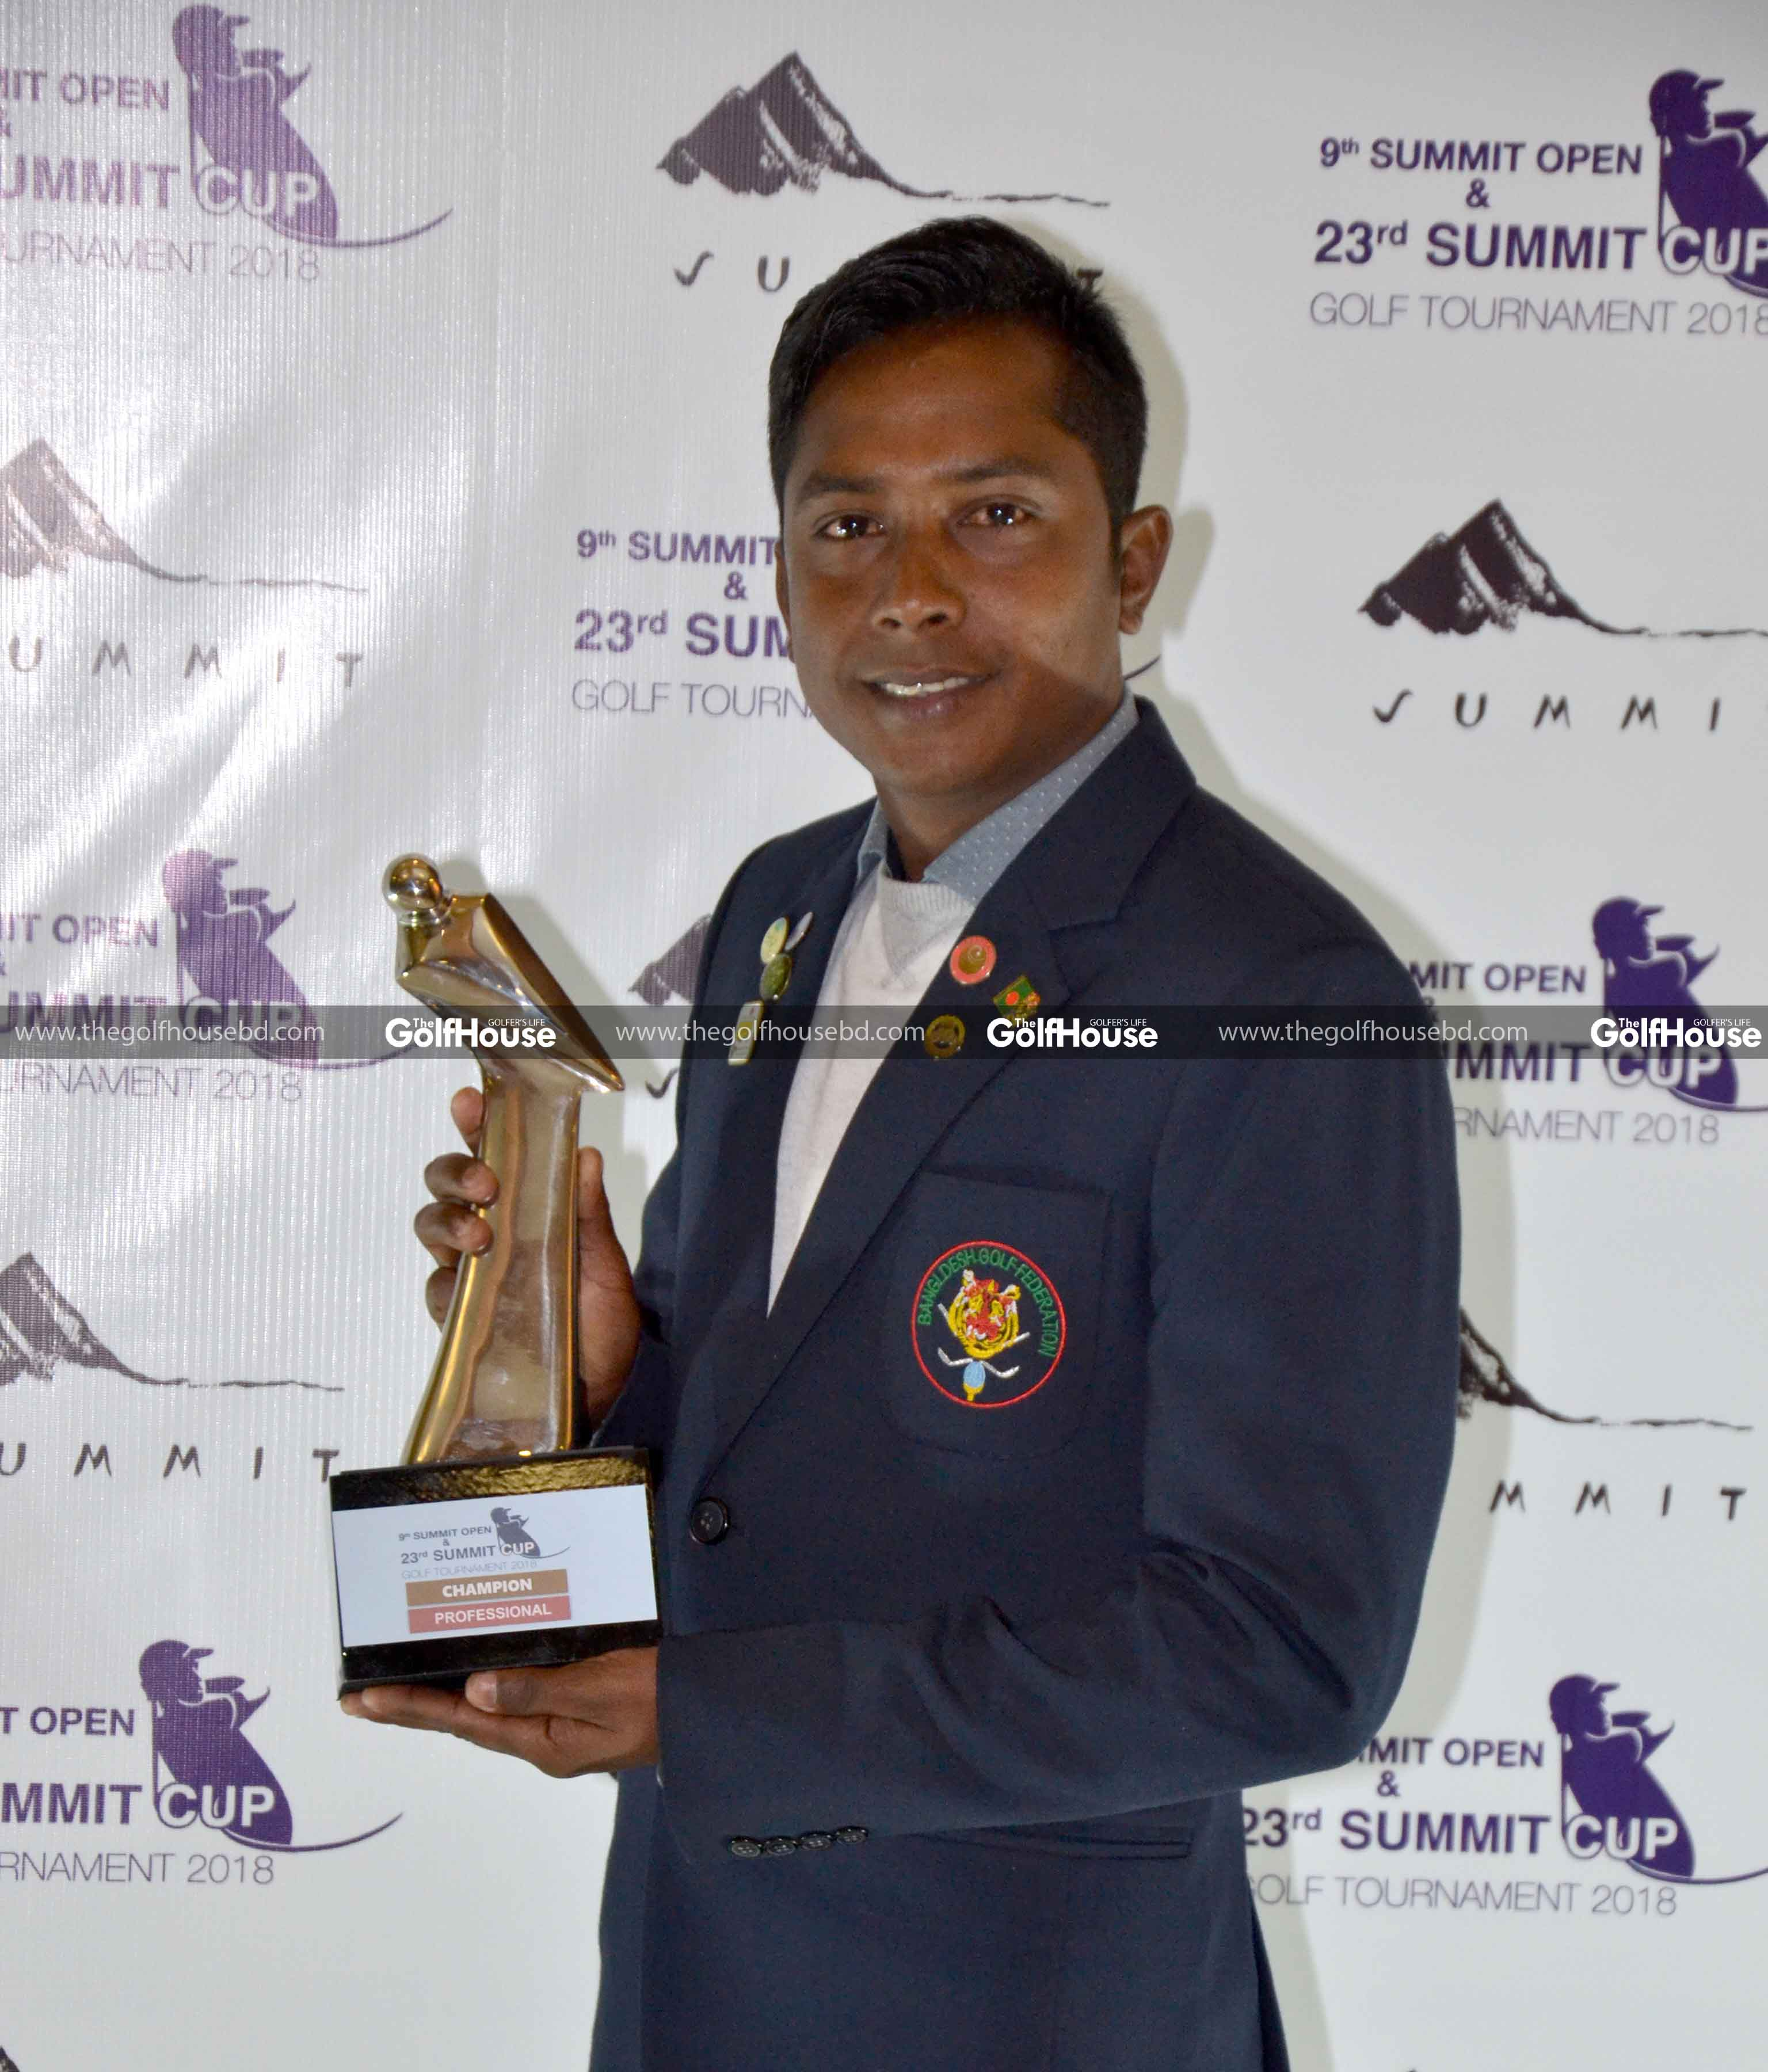 Mohammad Sajib Ali became champion while Mohammad Sagar won the runner-up award in the Summit Open.